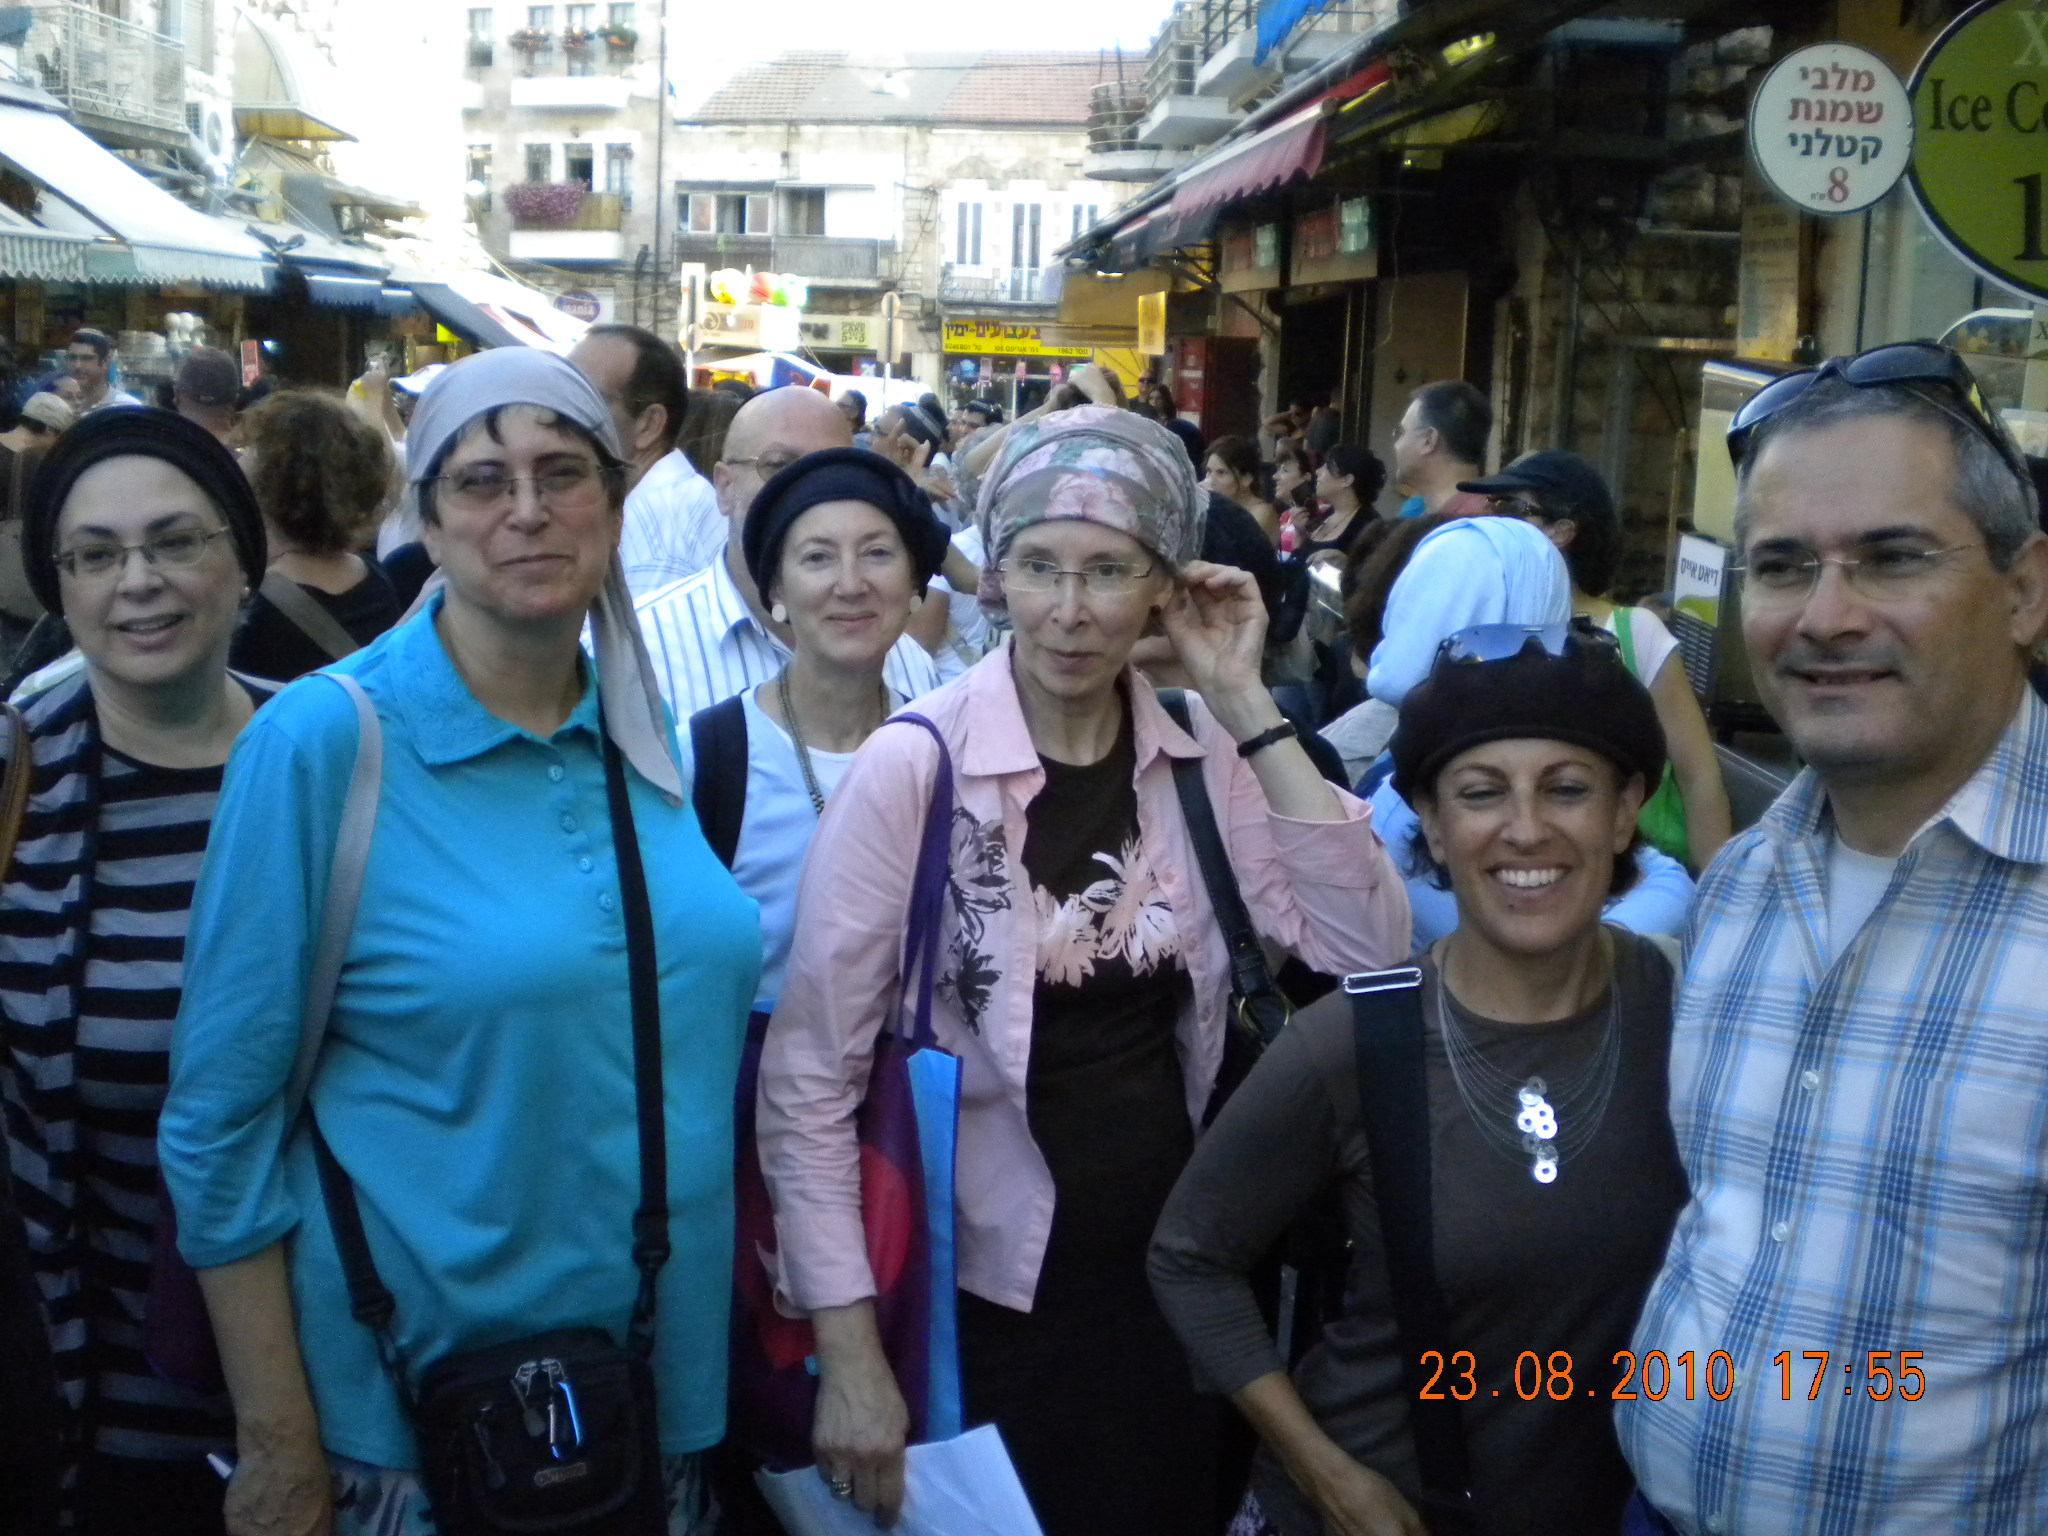 shuk-tour-aug-23-2010-2